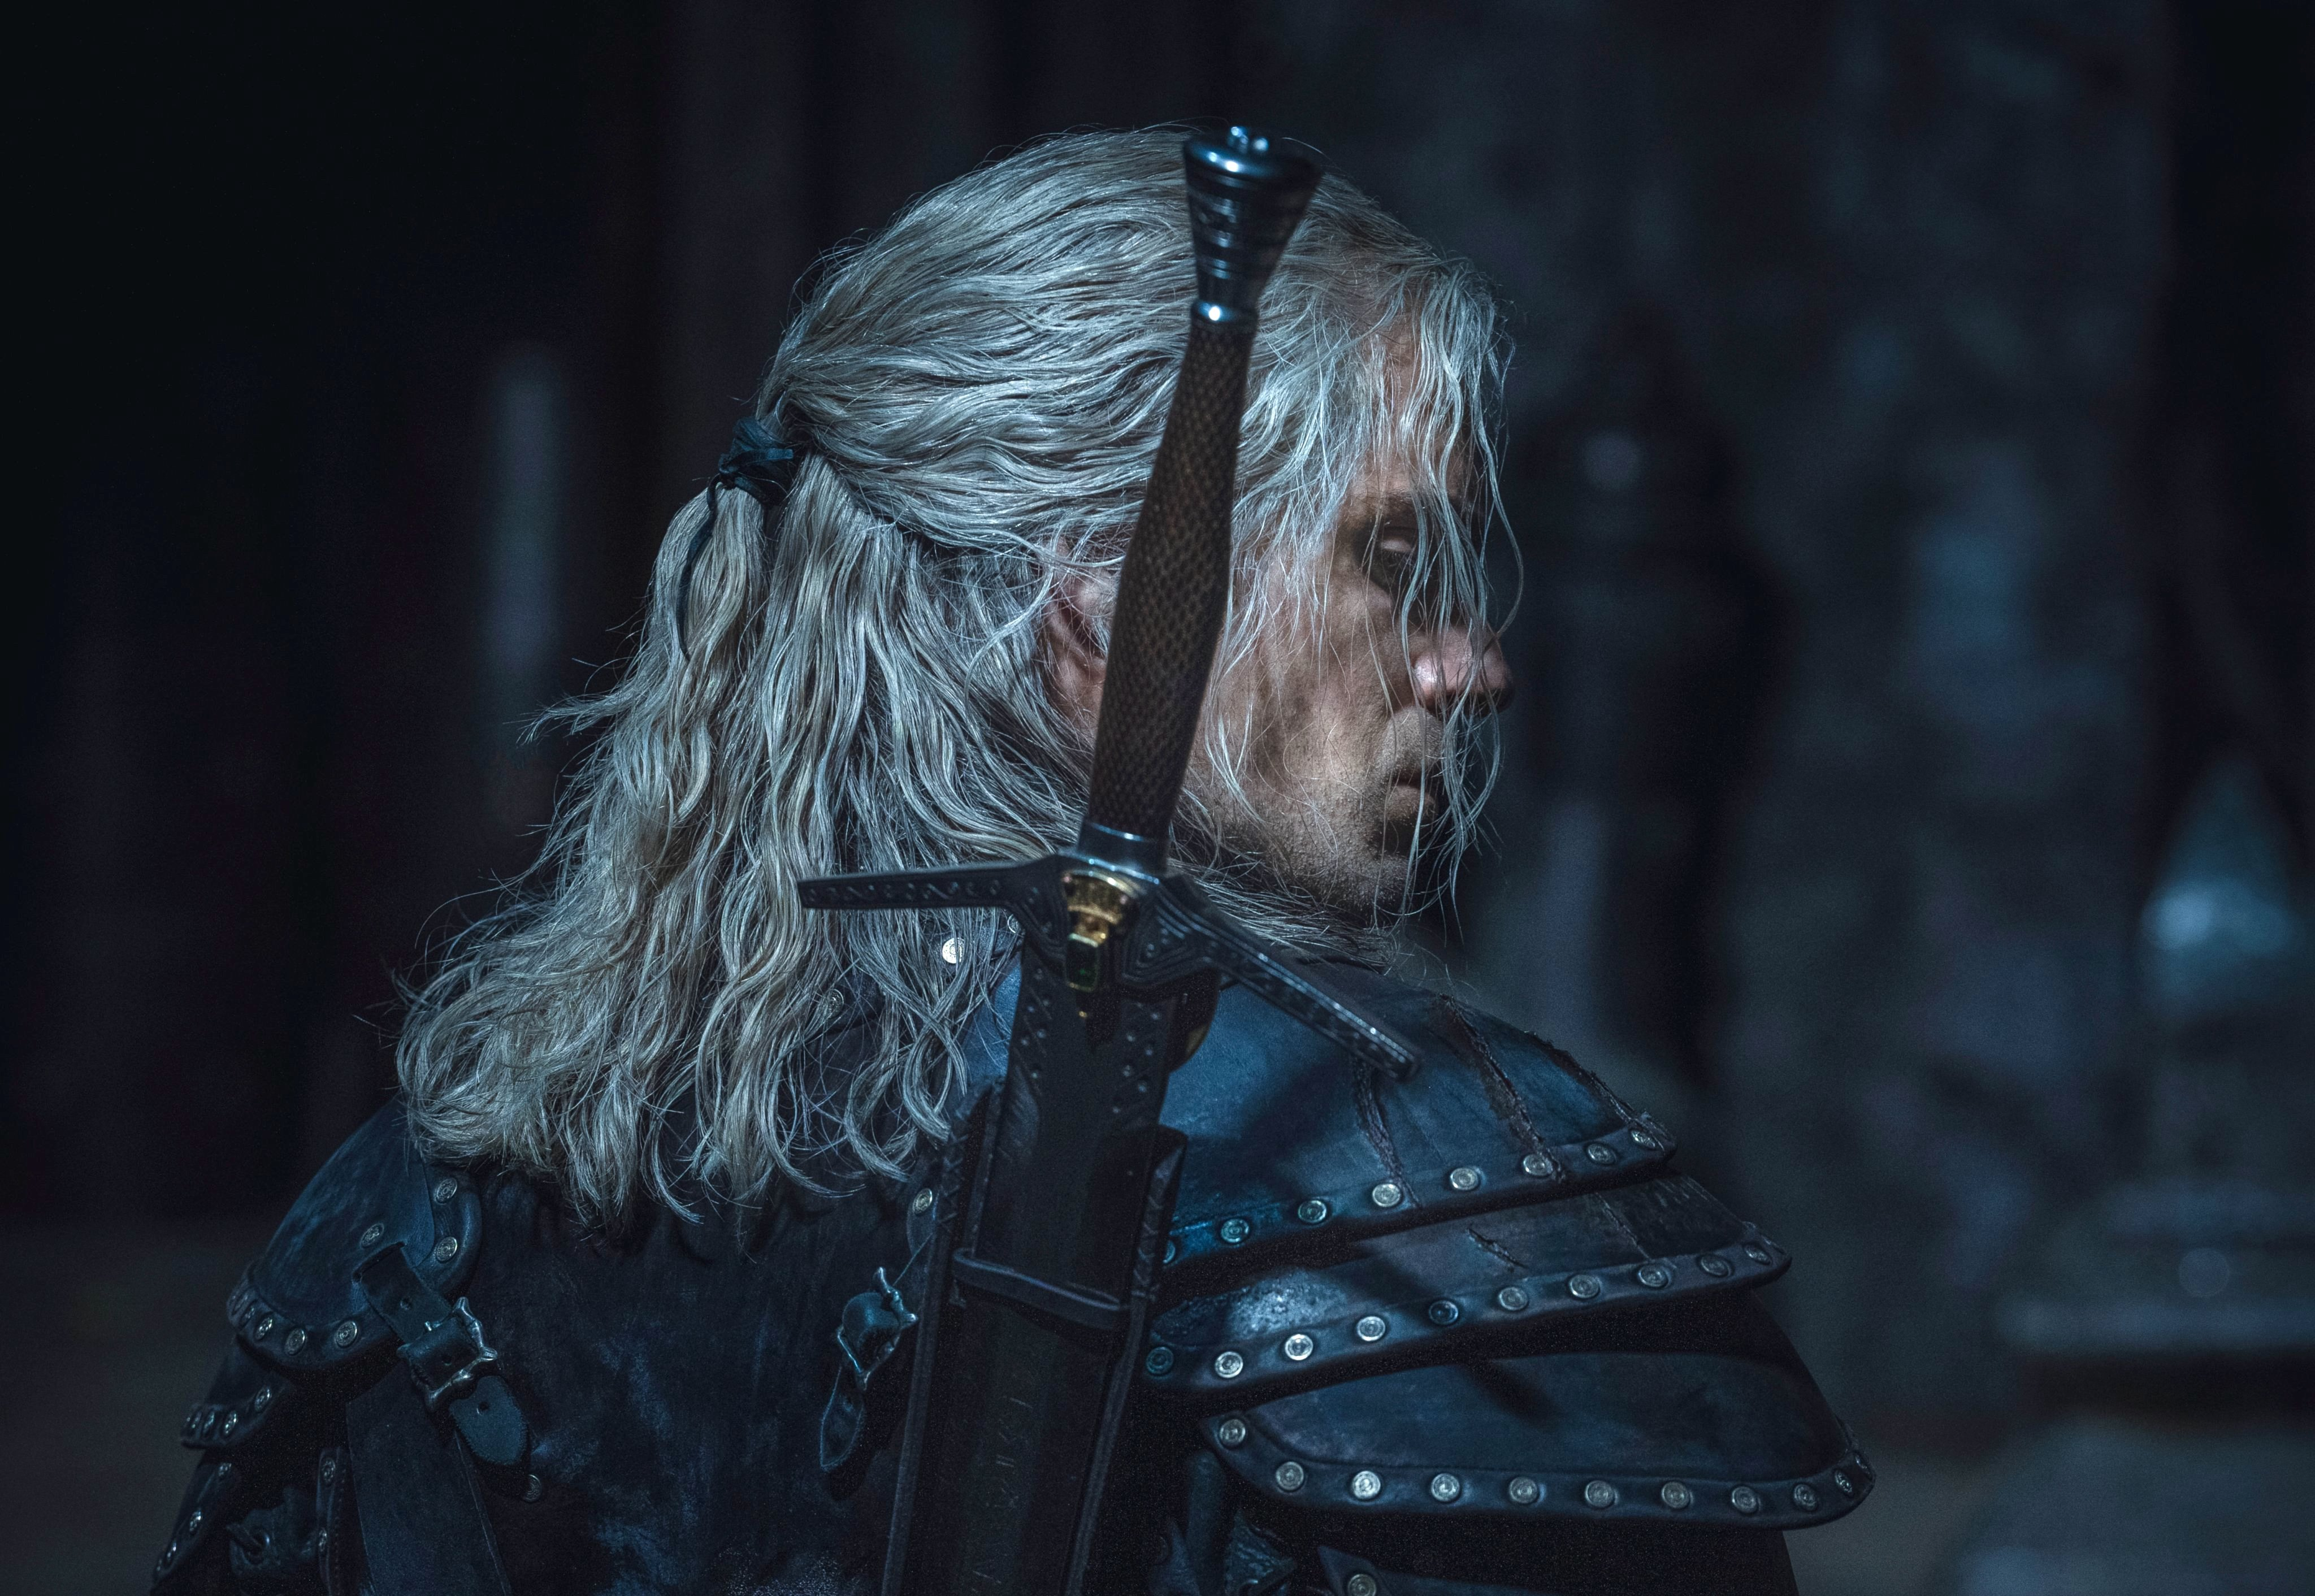 A back shot of Geralt from Netflix's The Witcher live-action series